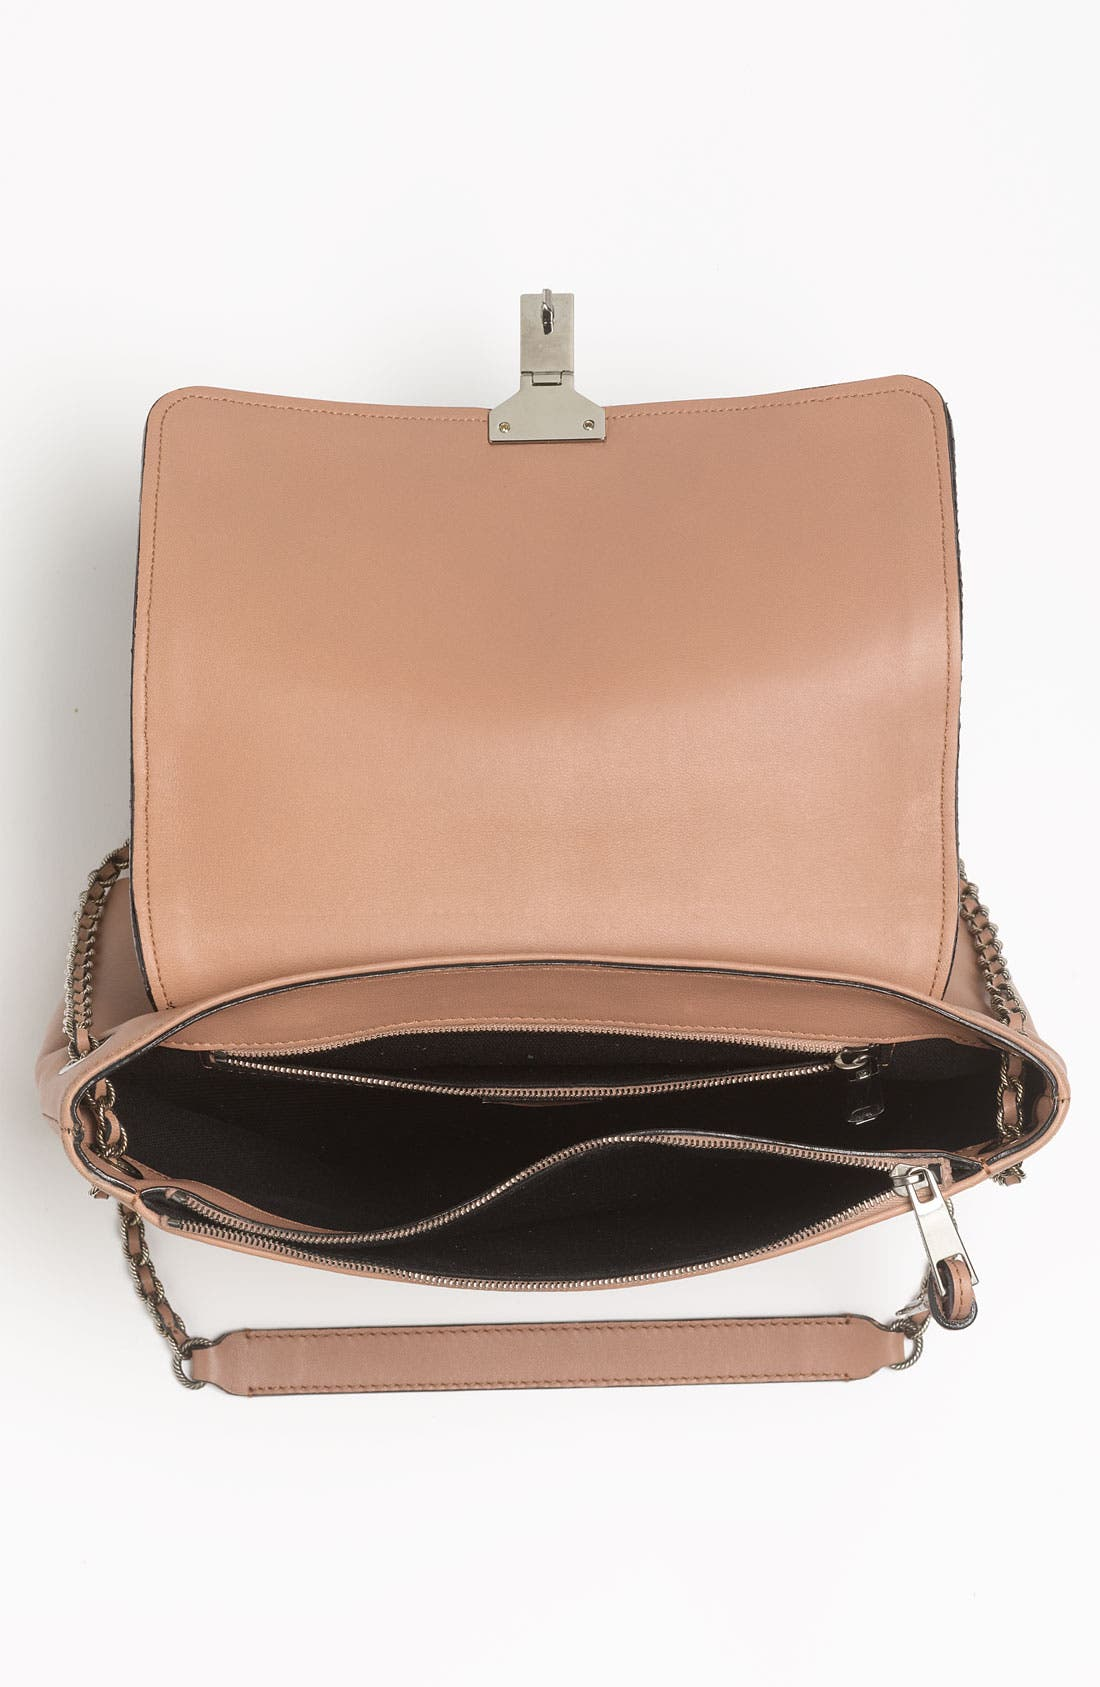 Alternate Image 3  - MARC JACOBS 'Safari - Large Single' Leather & Calf Hair Shoulder Bag